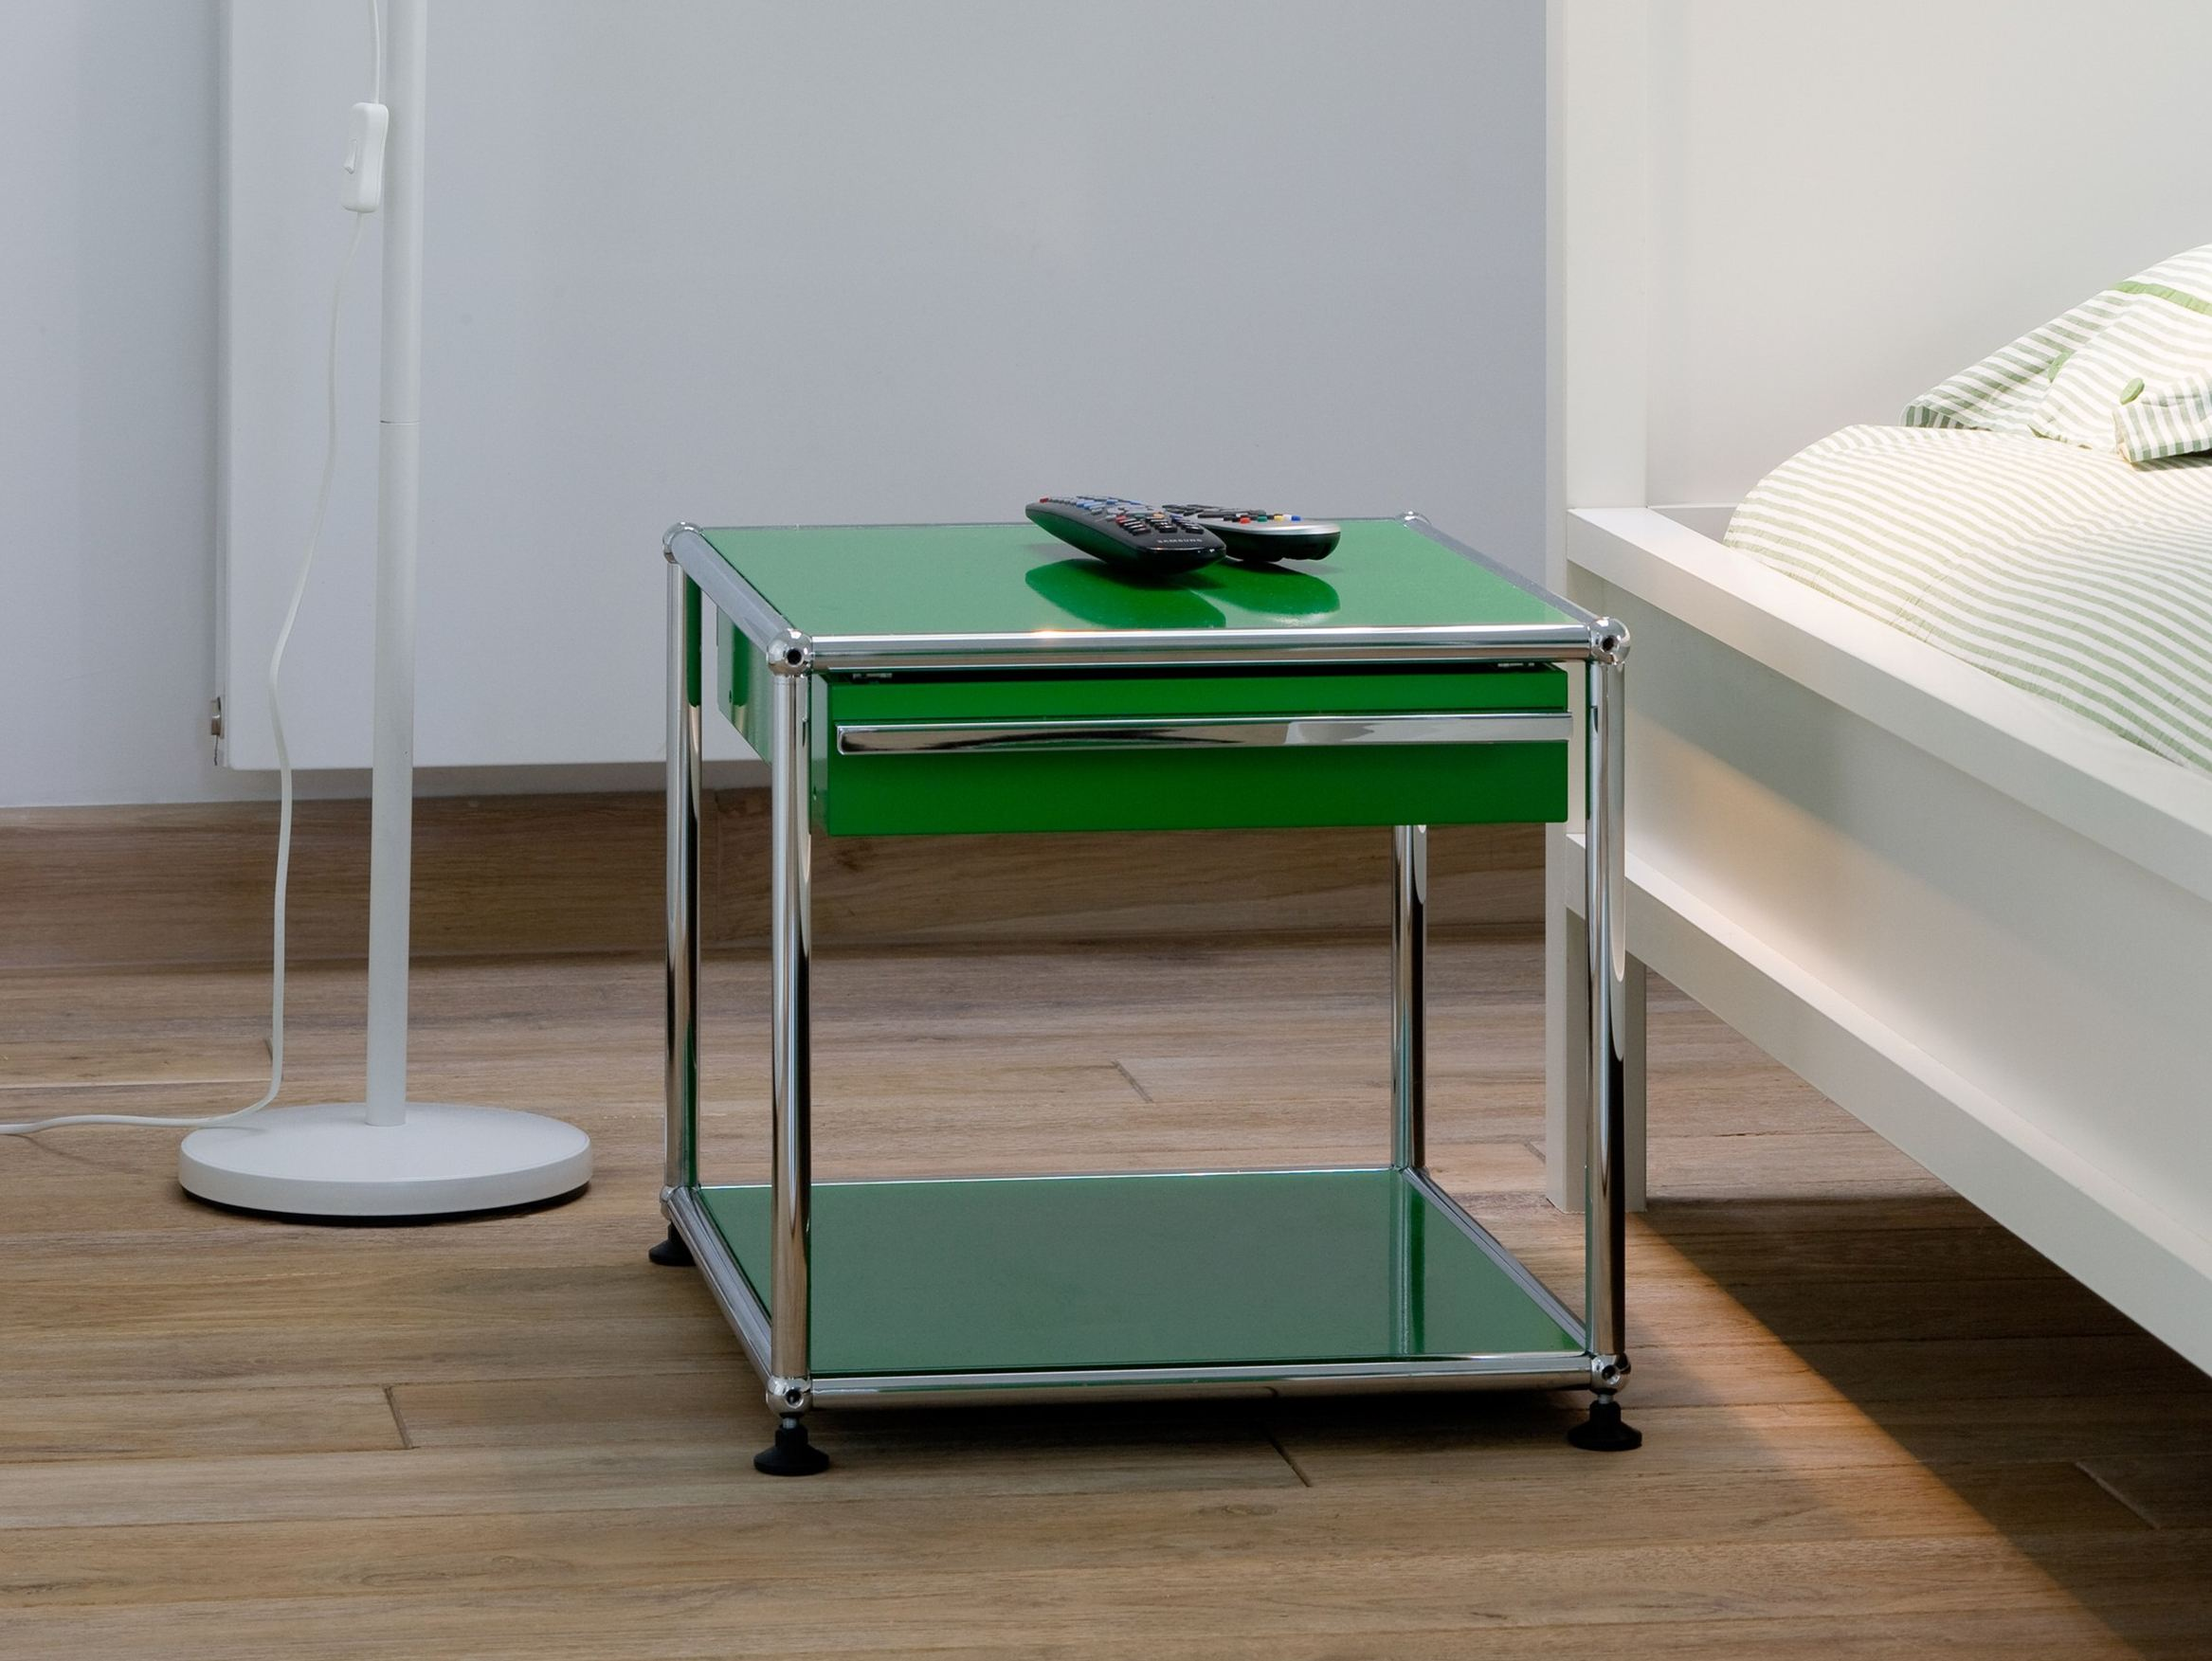 usm haller nightstand nachttisch by usm modular furniture design fritz haller. Black Bedroom Furniture Sets. Home Design Ideas